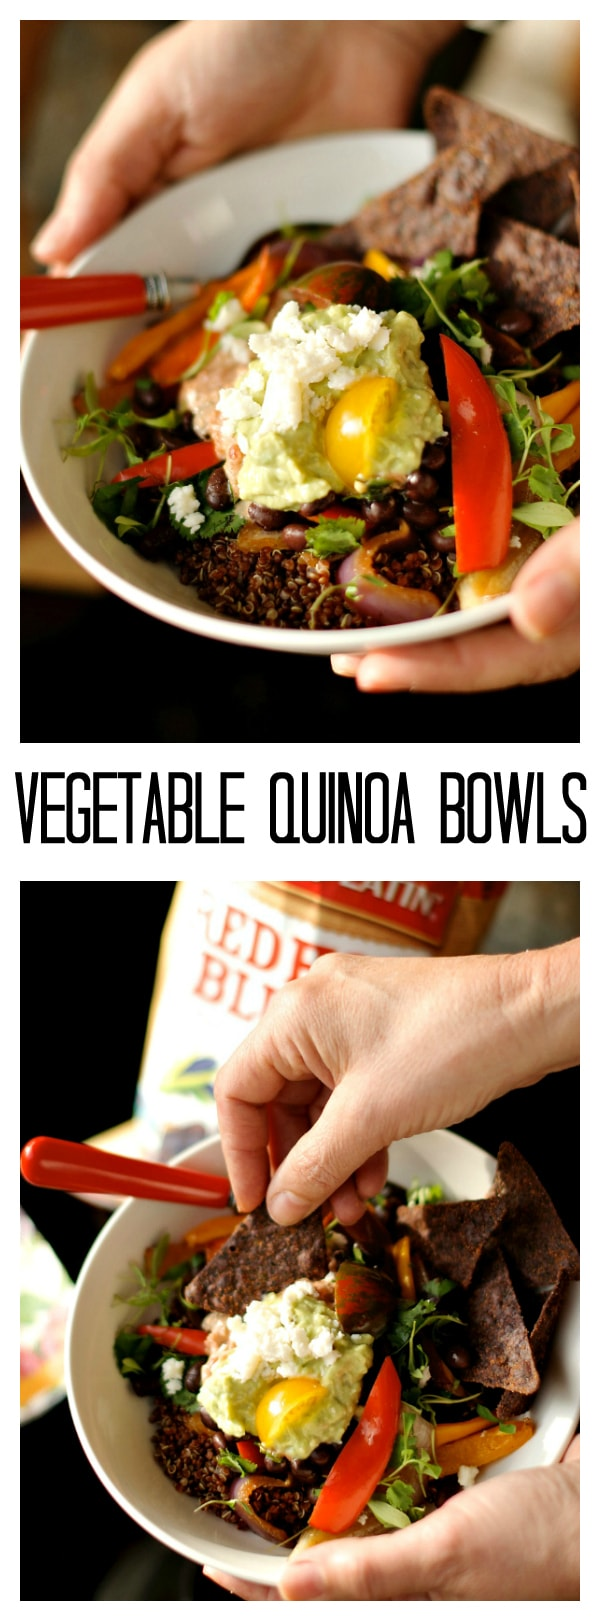 Vegetable Quinoa Bowls